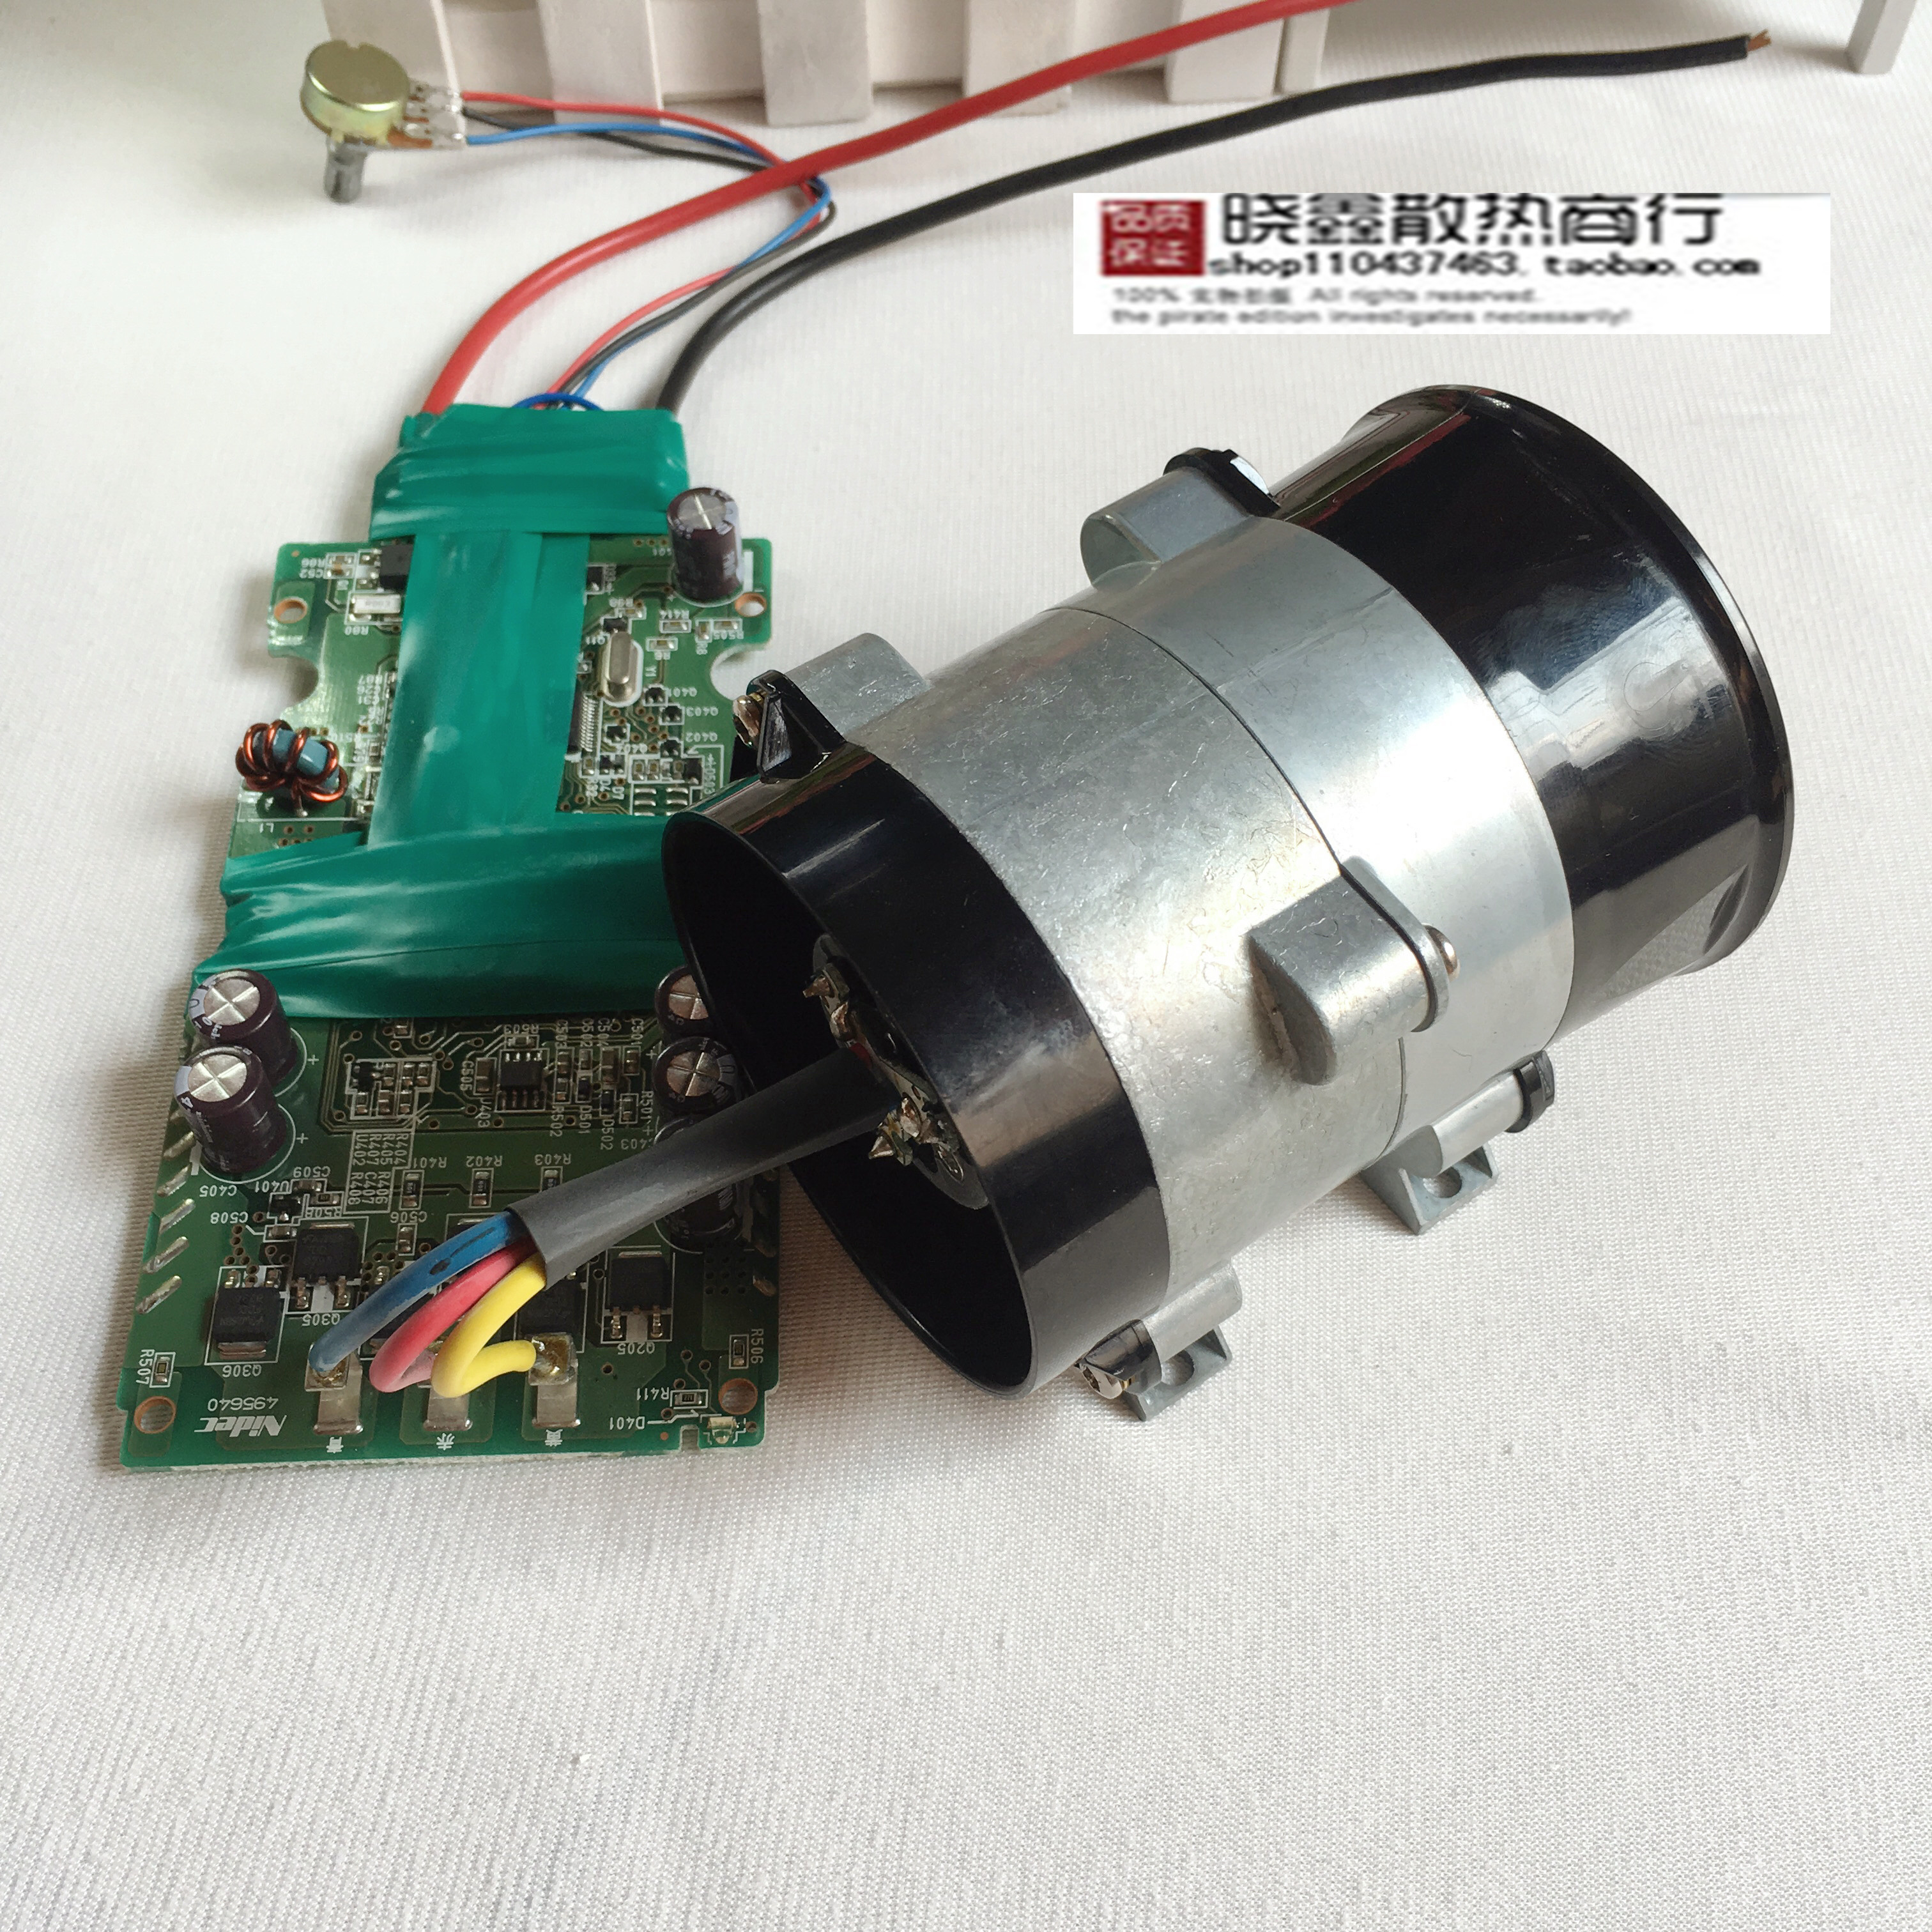 Violence metal ducted fan rotor brushless DC motor high-speed turbine fan  12V 16 5A